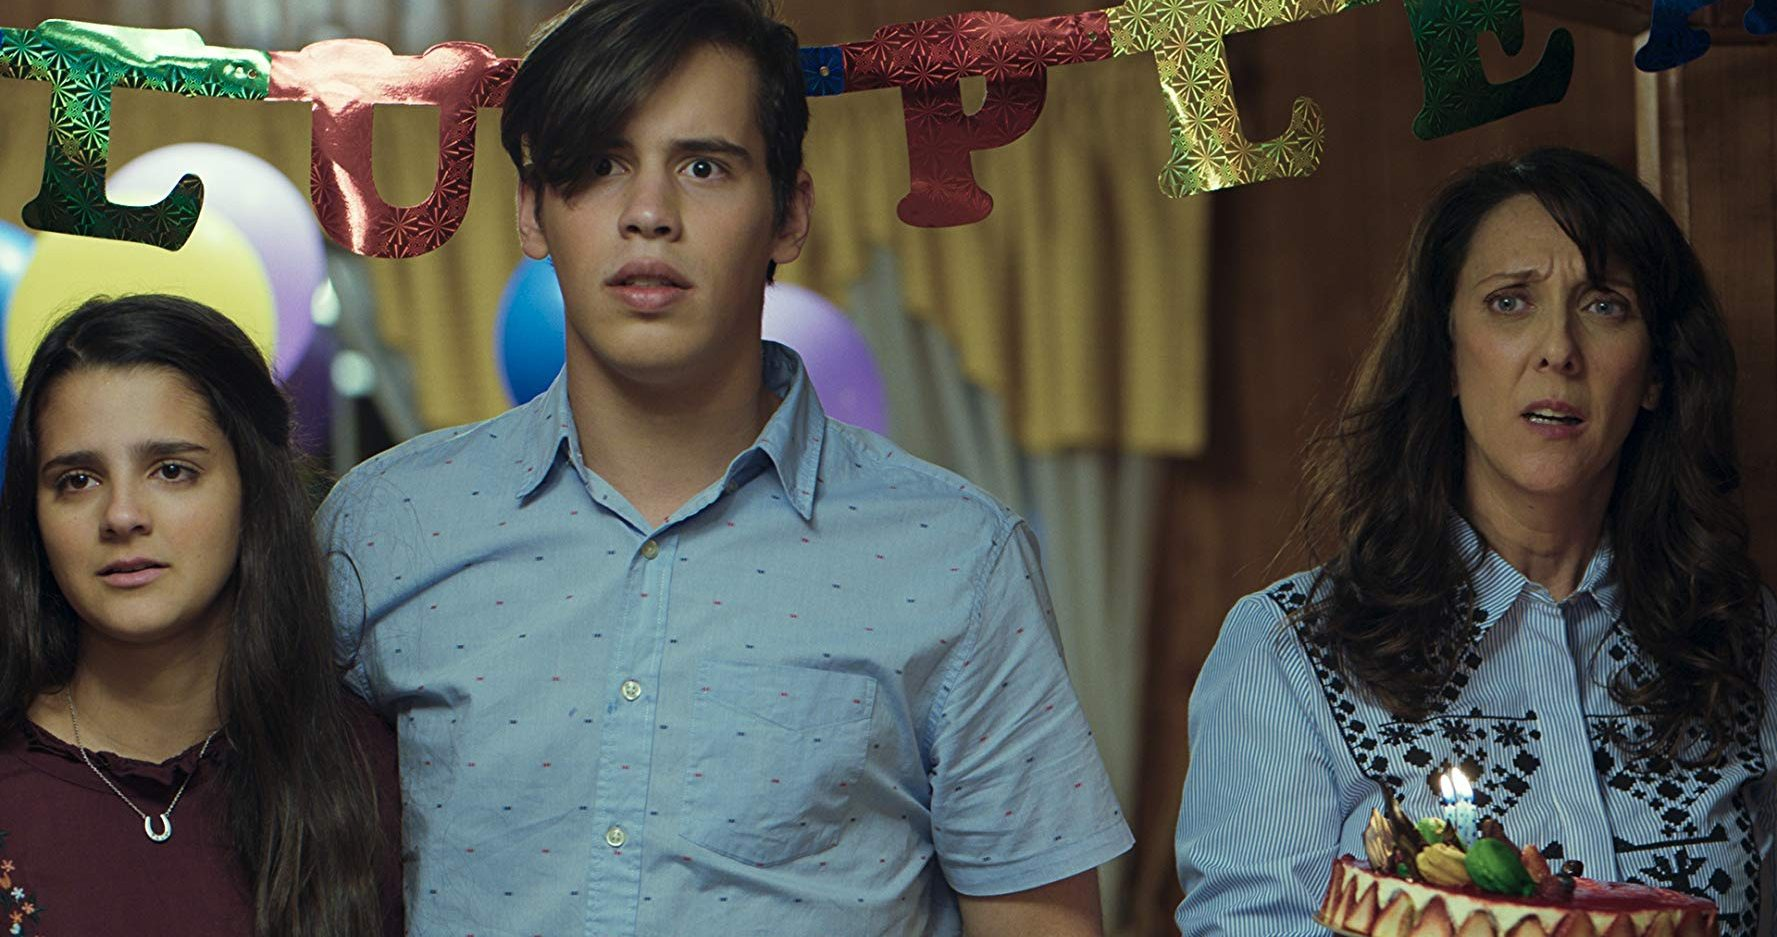 REVIEW: Panamanian Movie 'Todos Cambiamos' Is About a Trans Woman Tired of Living a Double Life